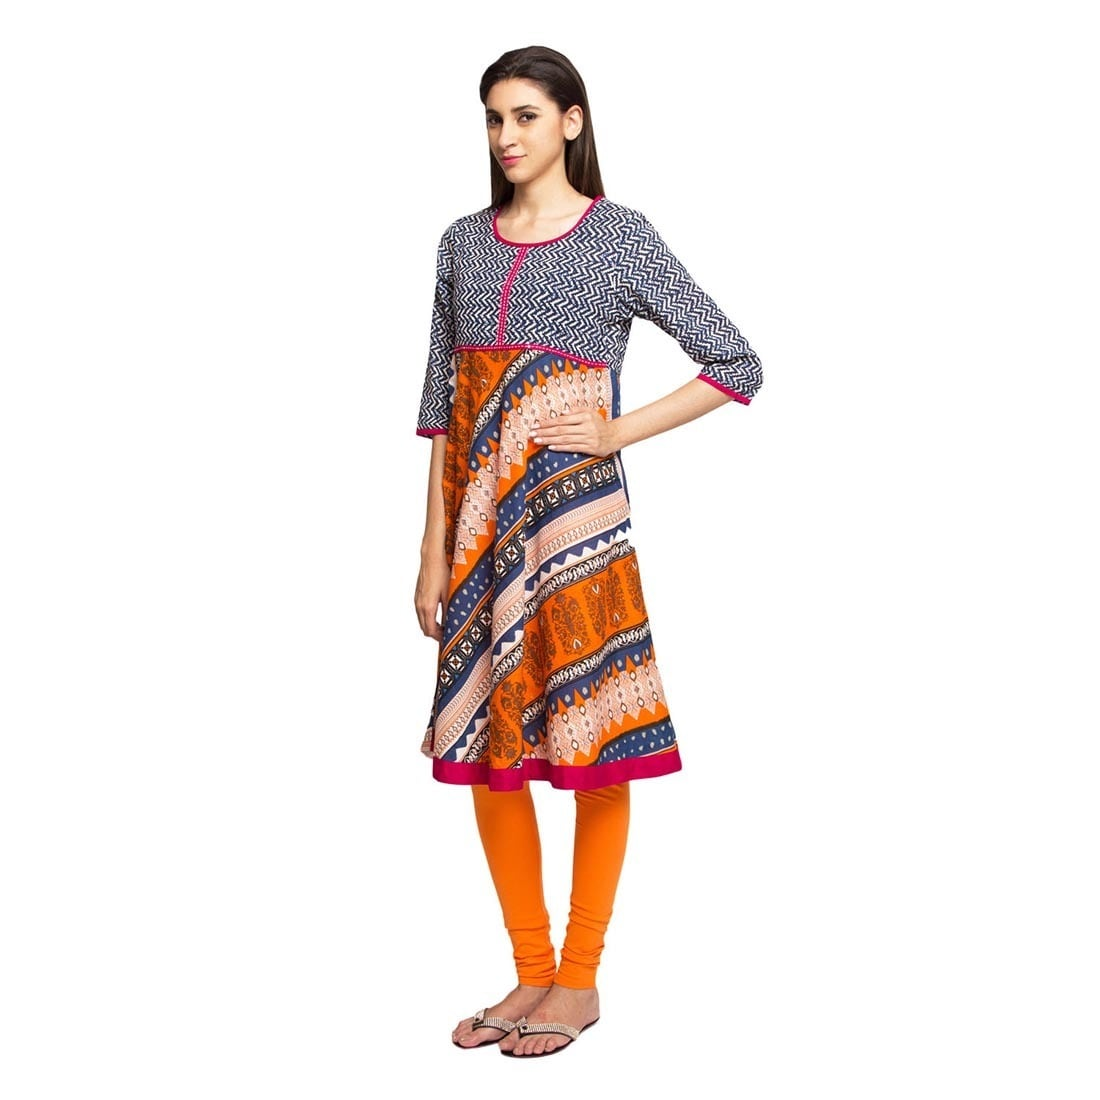 19776d5a78c Shop Handmade In-Sattva Ethnicity Women's Indian Trendy Multi-Print Kurta  Tunic (India) - On Sale - Free Shipping On Orders Over $45 - Overstock -  12192089